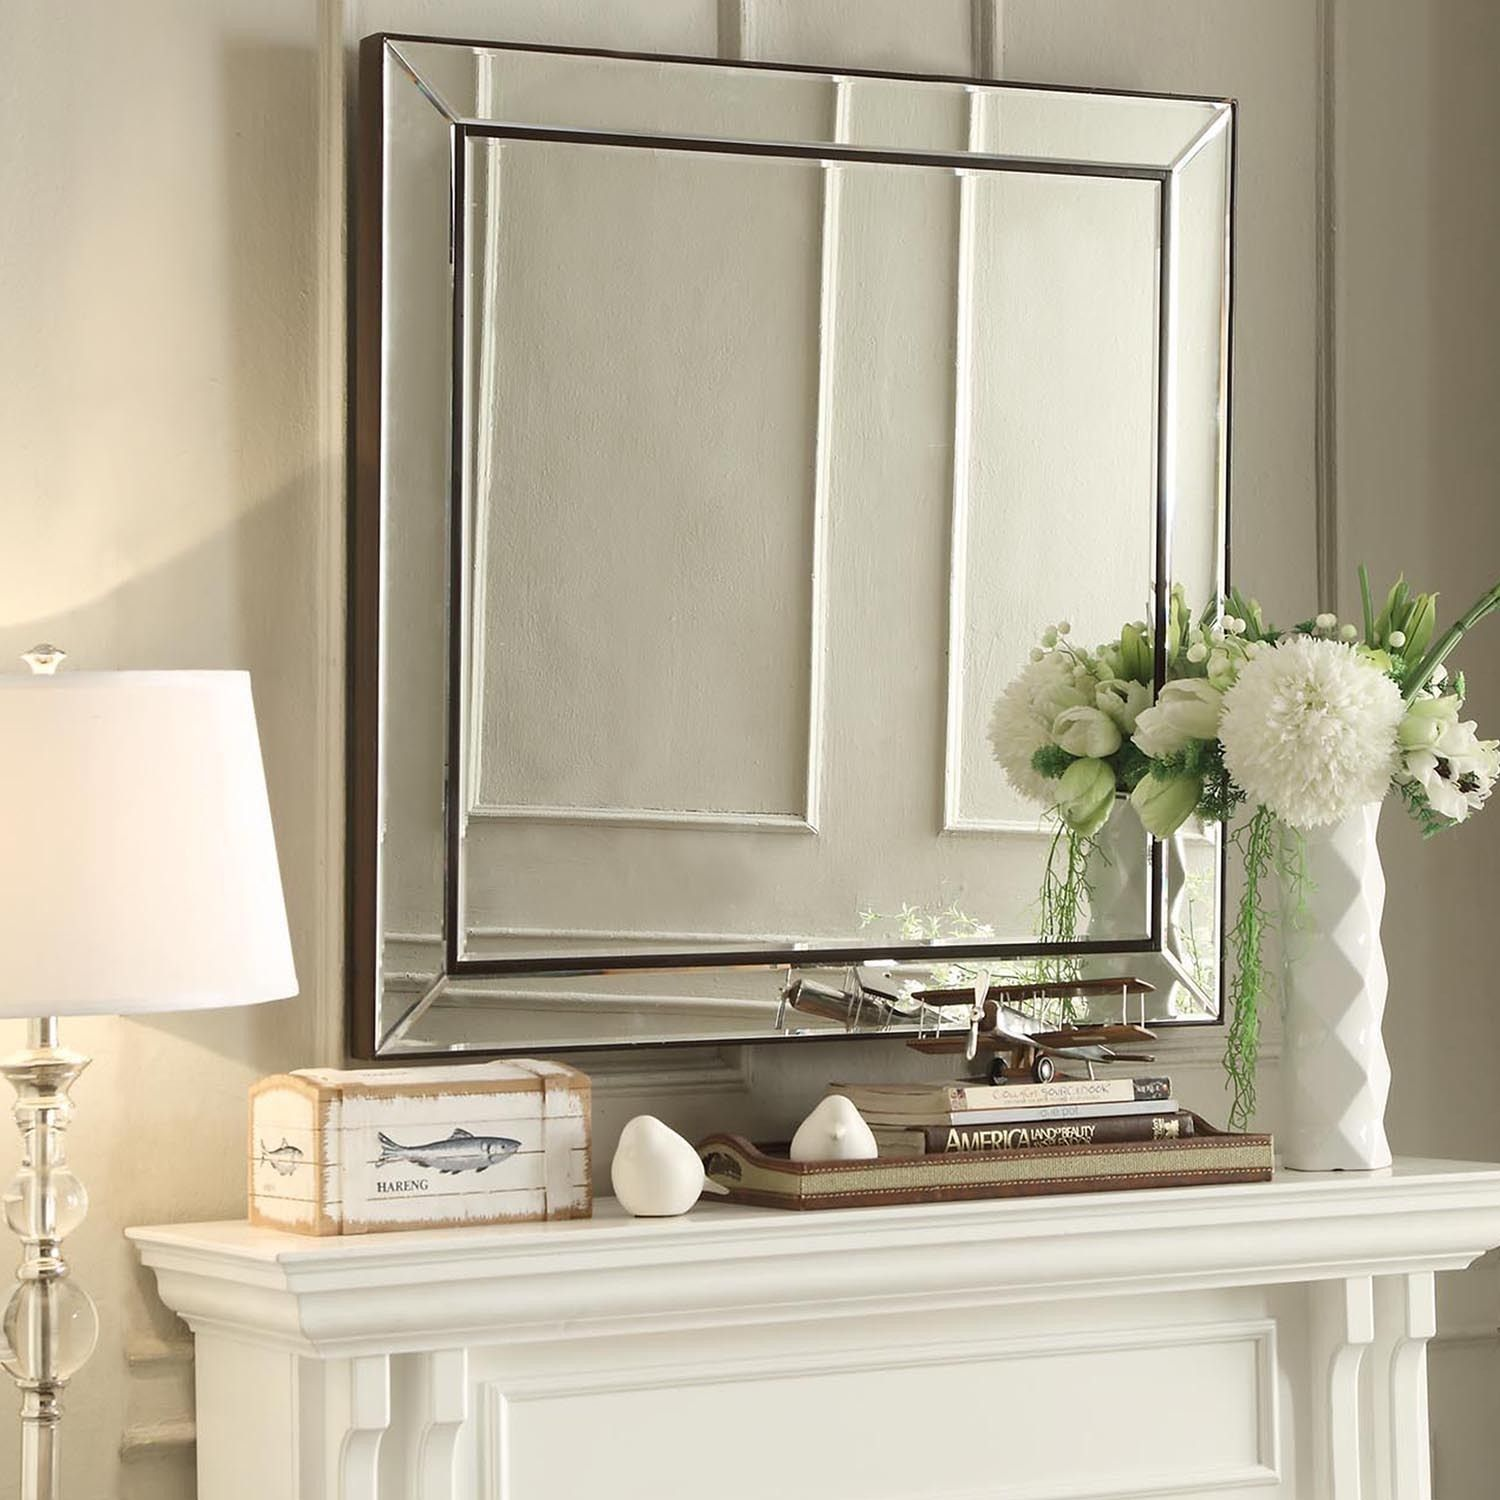 Brinkley Dark Brown Trim Mirrored Frame Square Accent Wall Mirror by  iNSPIRE Q Bold by iNSPIRE Q